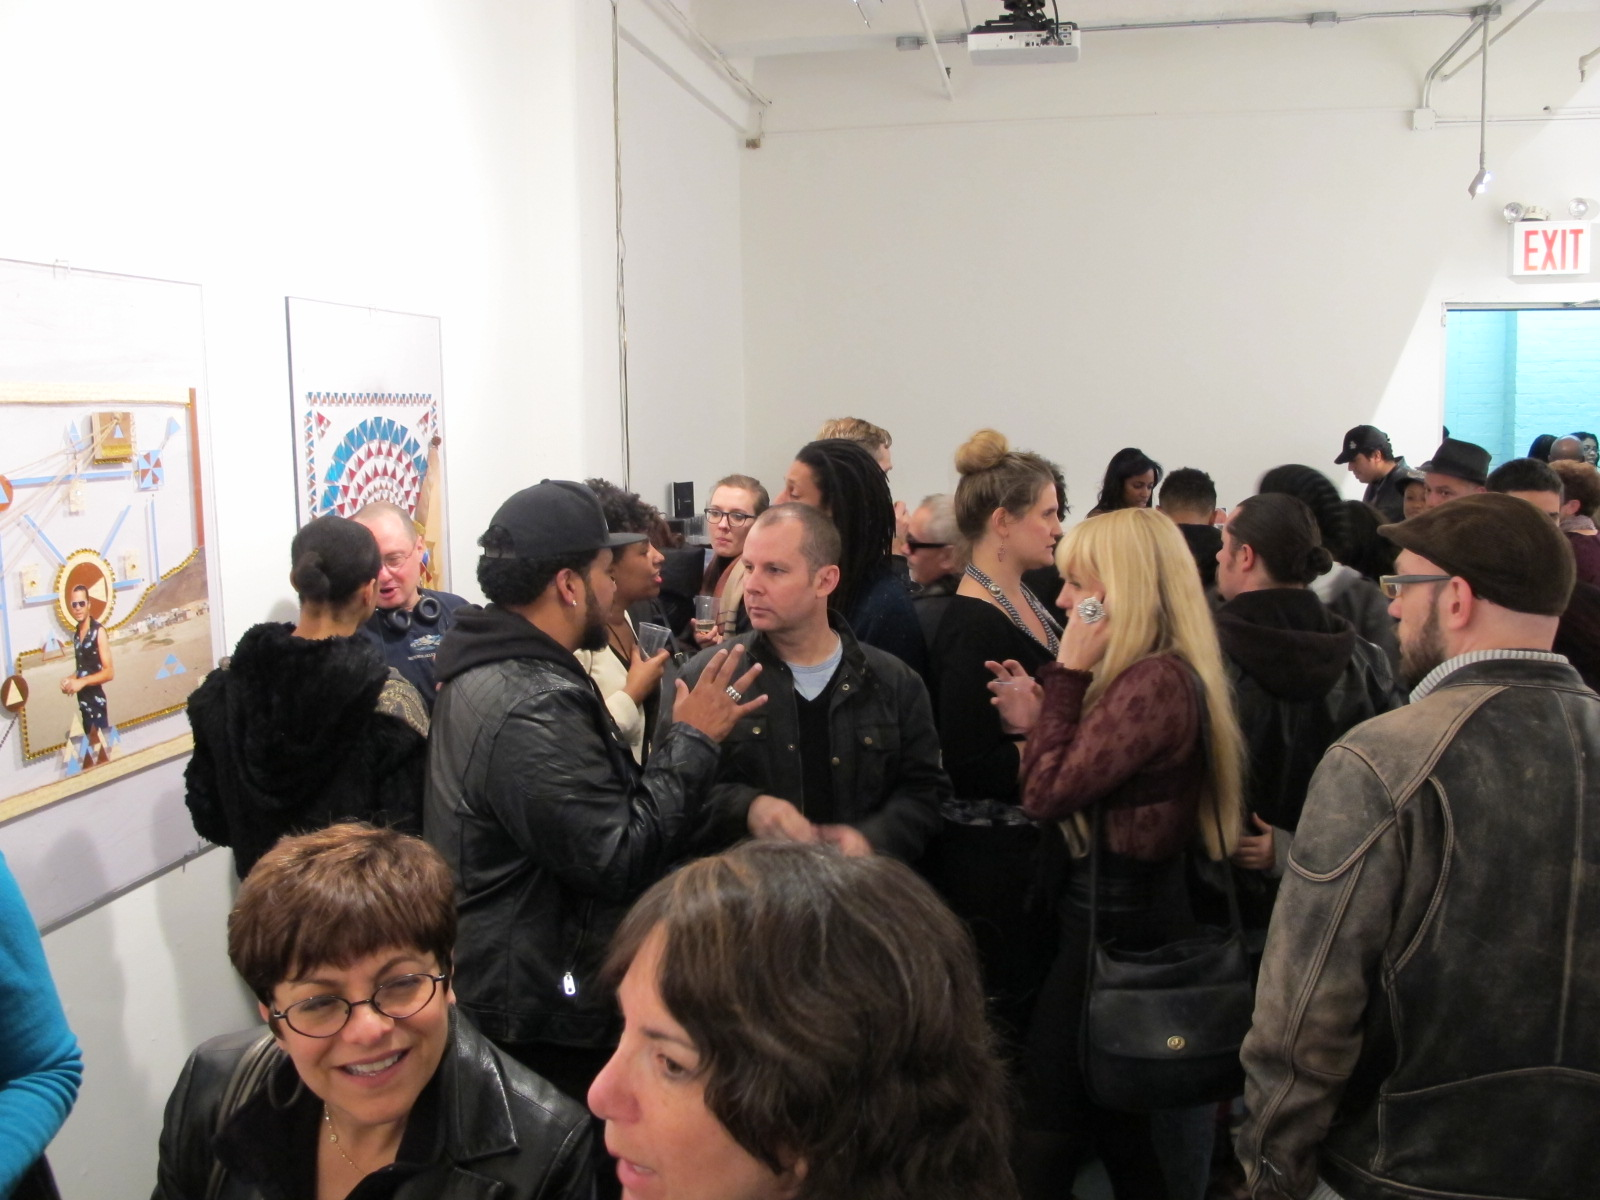 It was a full house for the opening